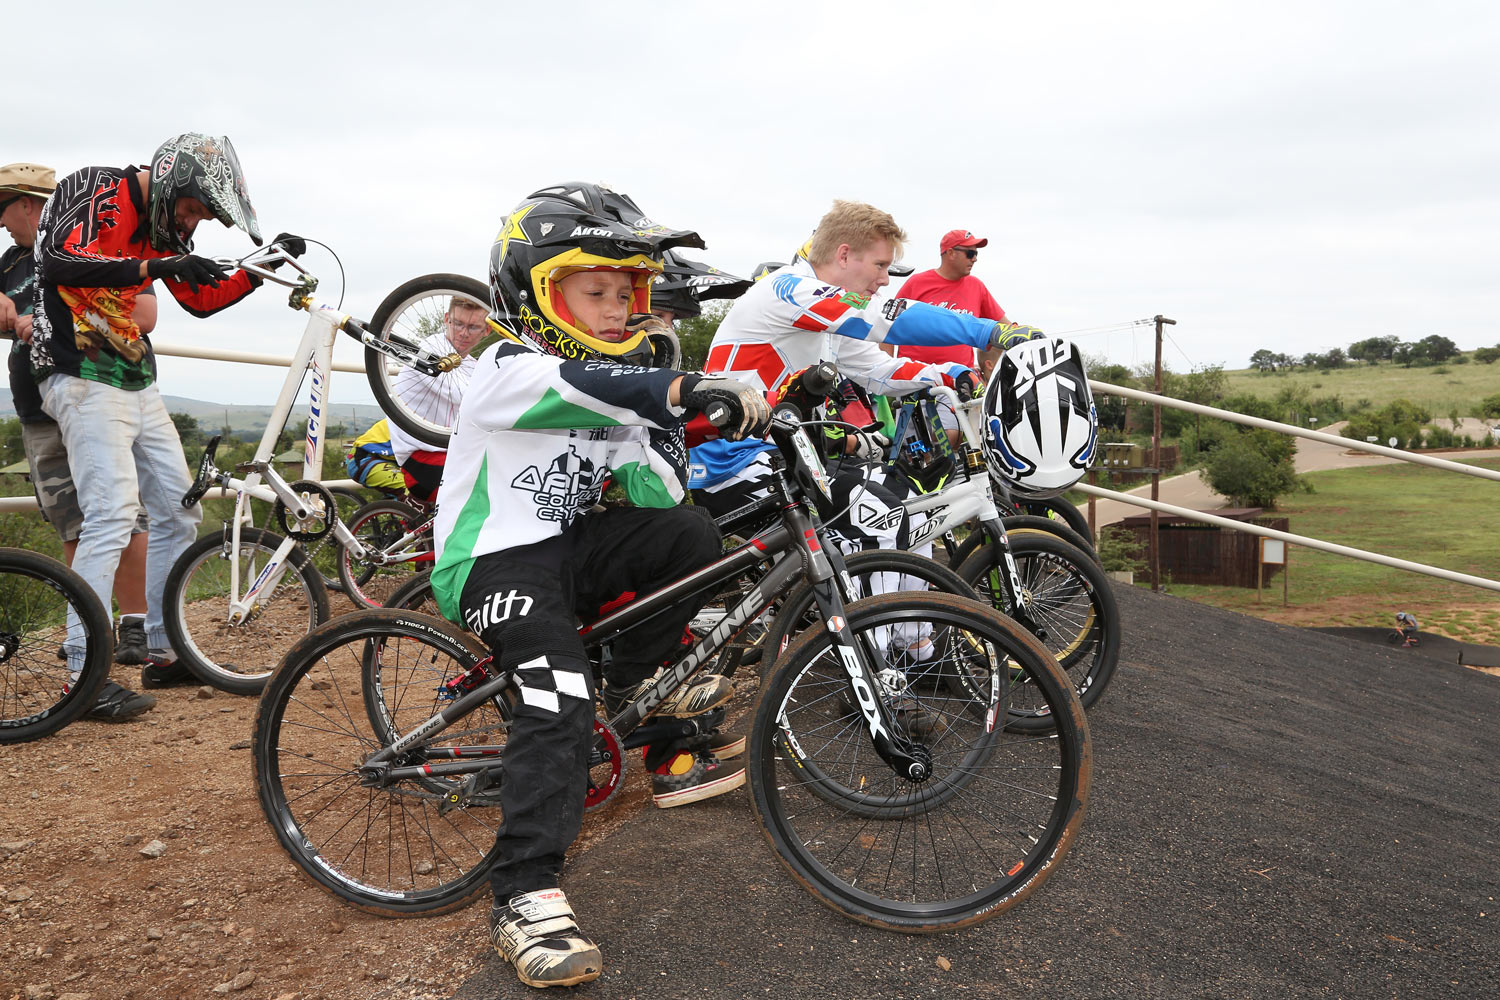 This Sunday – BMX race event at the Cradle Bike Park this Sunday – don't miss out!